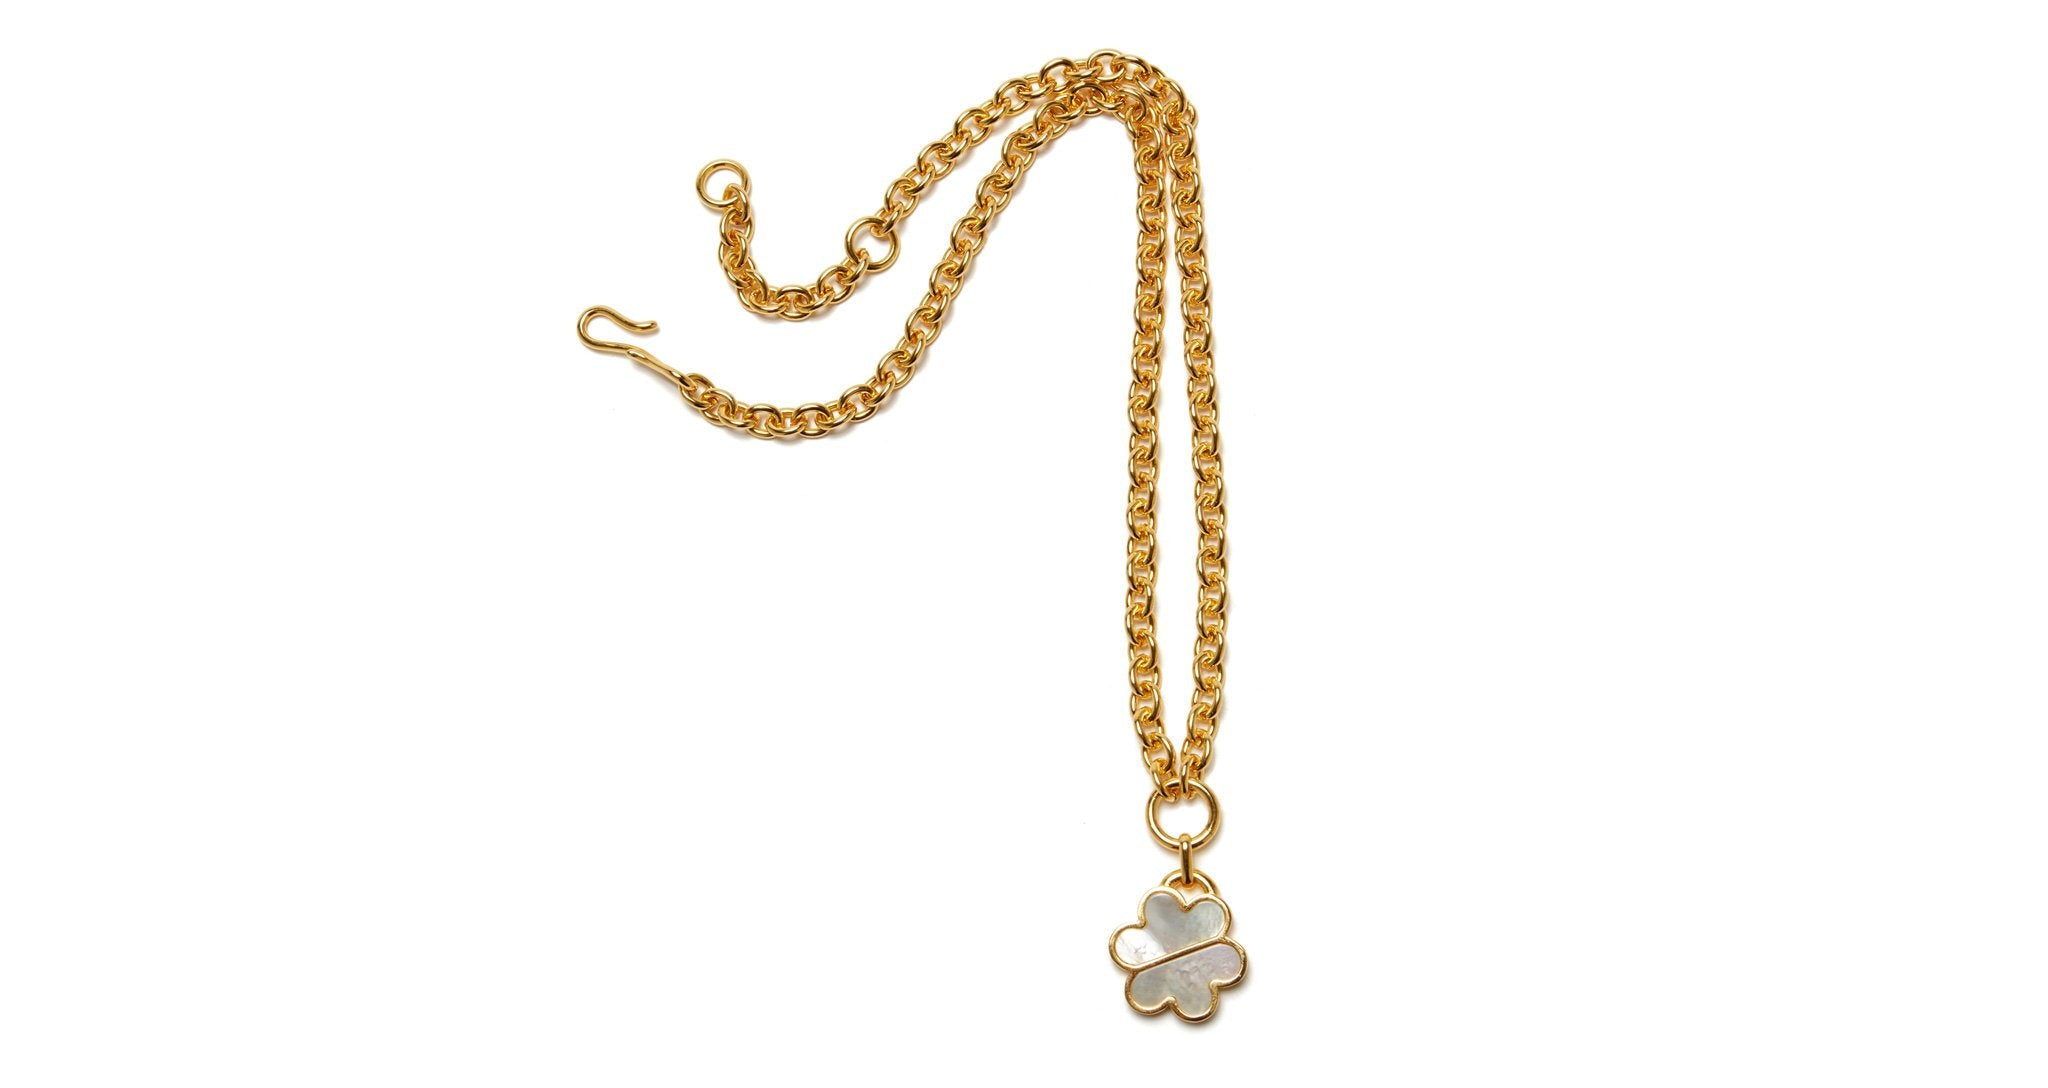 Lizzie Fortunato Daisy Chain Necklace - Mother of Pearl